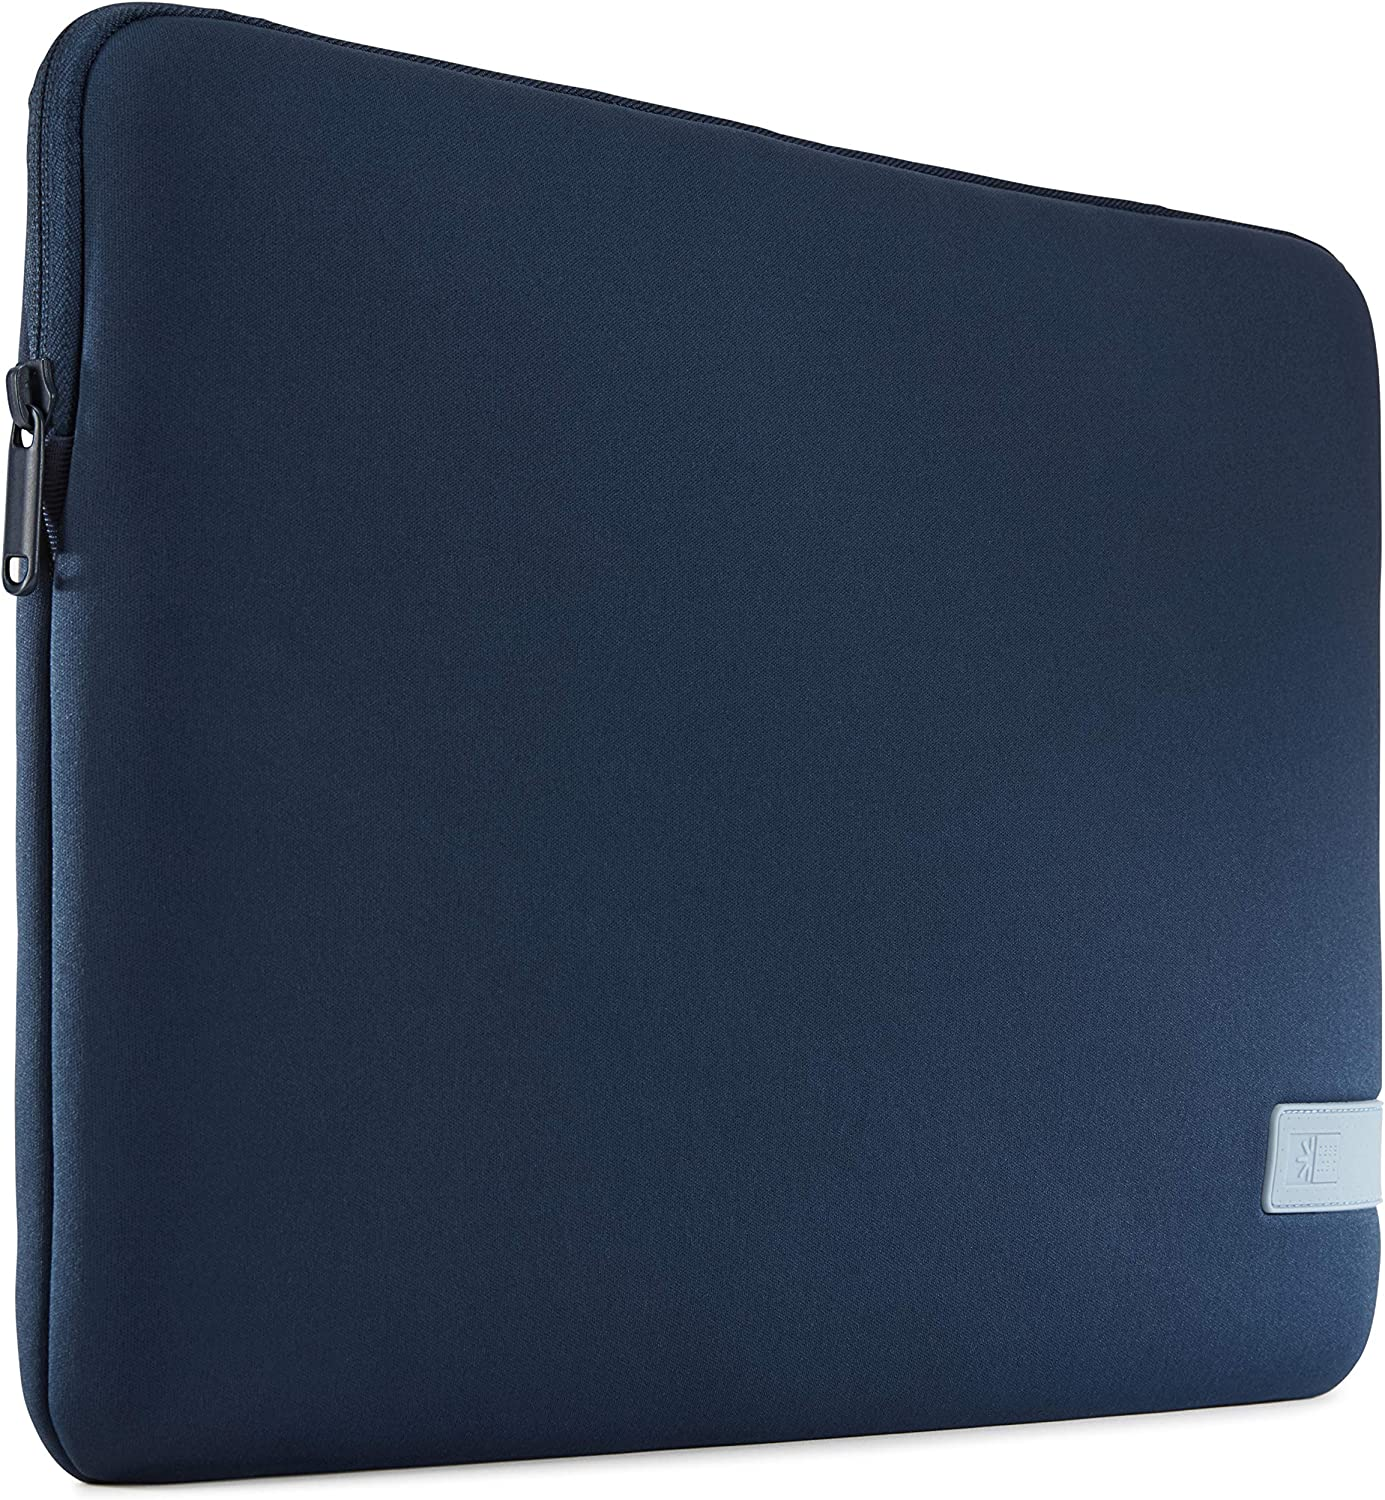 "Case Logic Reflect 14"" Laptop Sleeve, Dark Blue (3203961)"